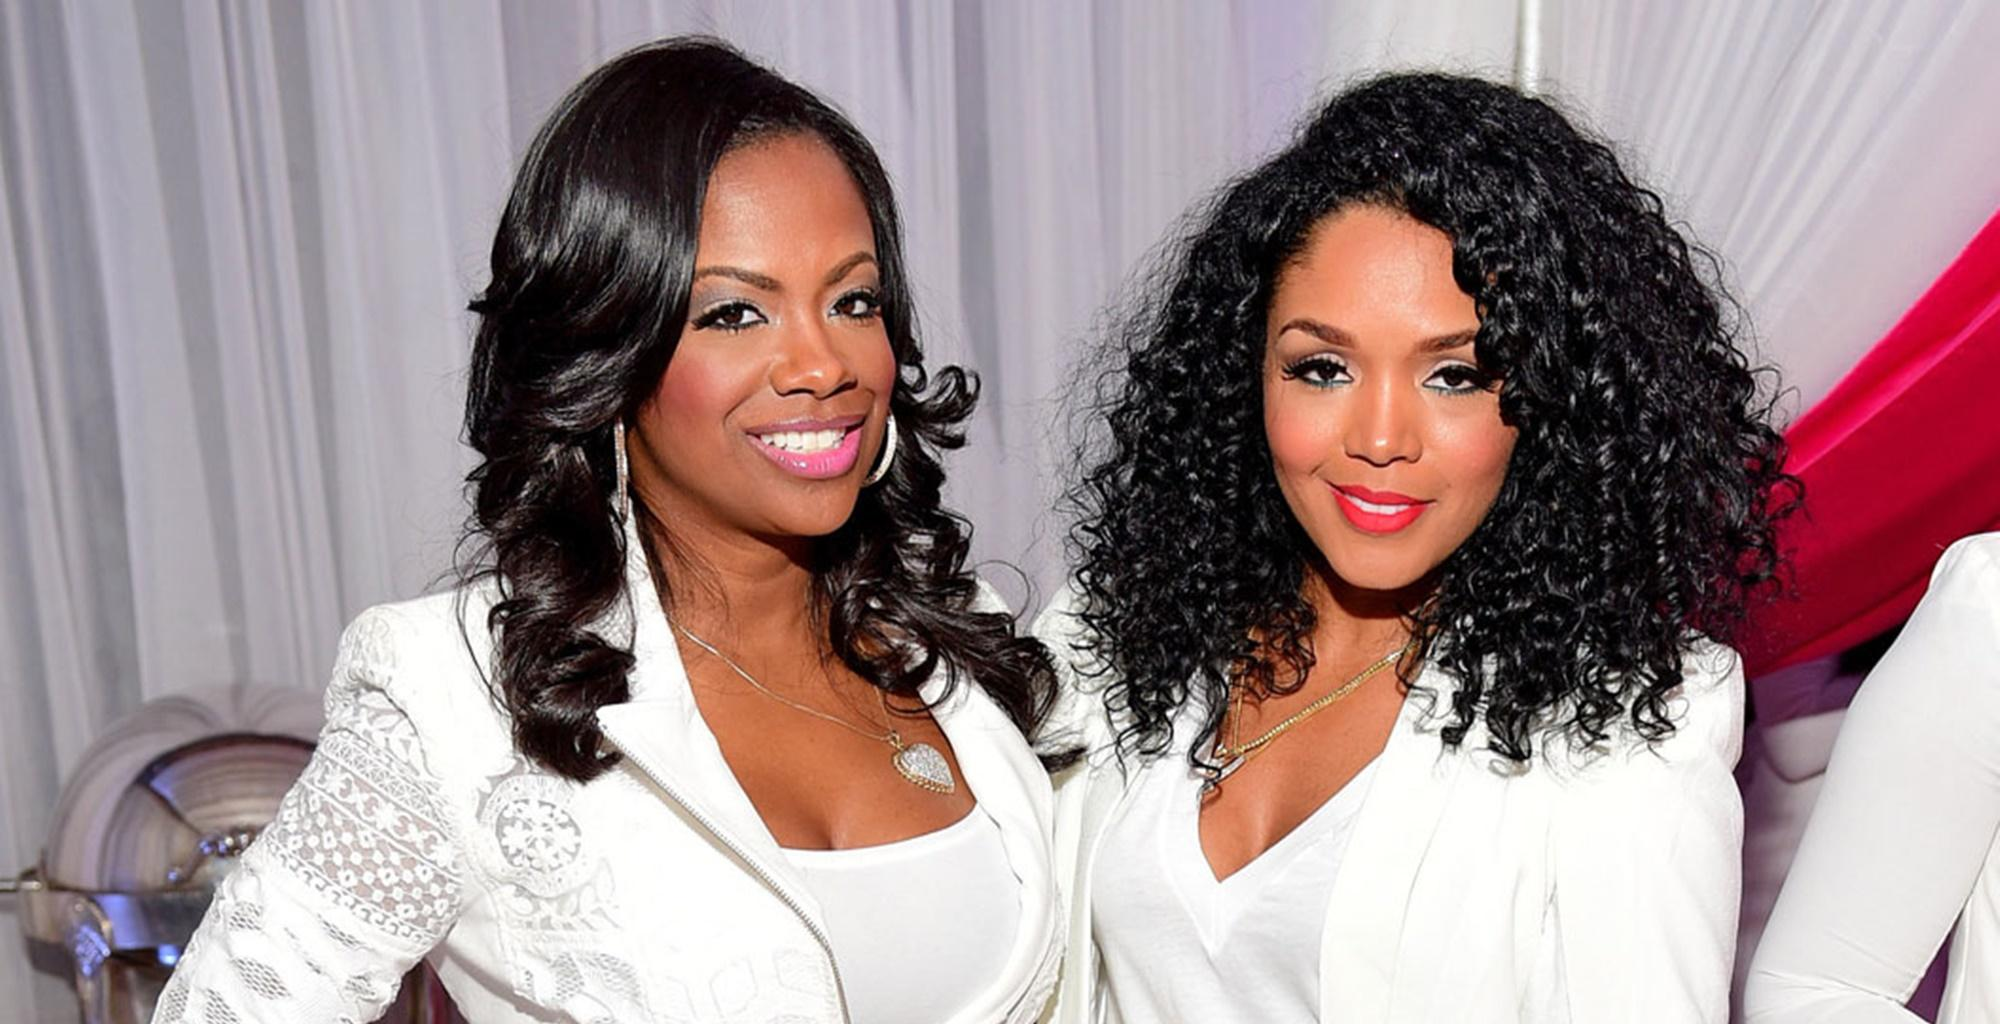 Rasheeda Frost Reveals That Kandi Burruss Is Trying To Steal Her And Kirk Frost's Recipes - Watch The Video They Filmed Over The Past Weekend